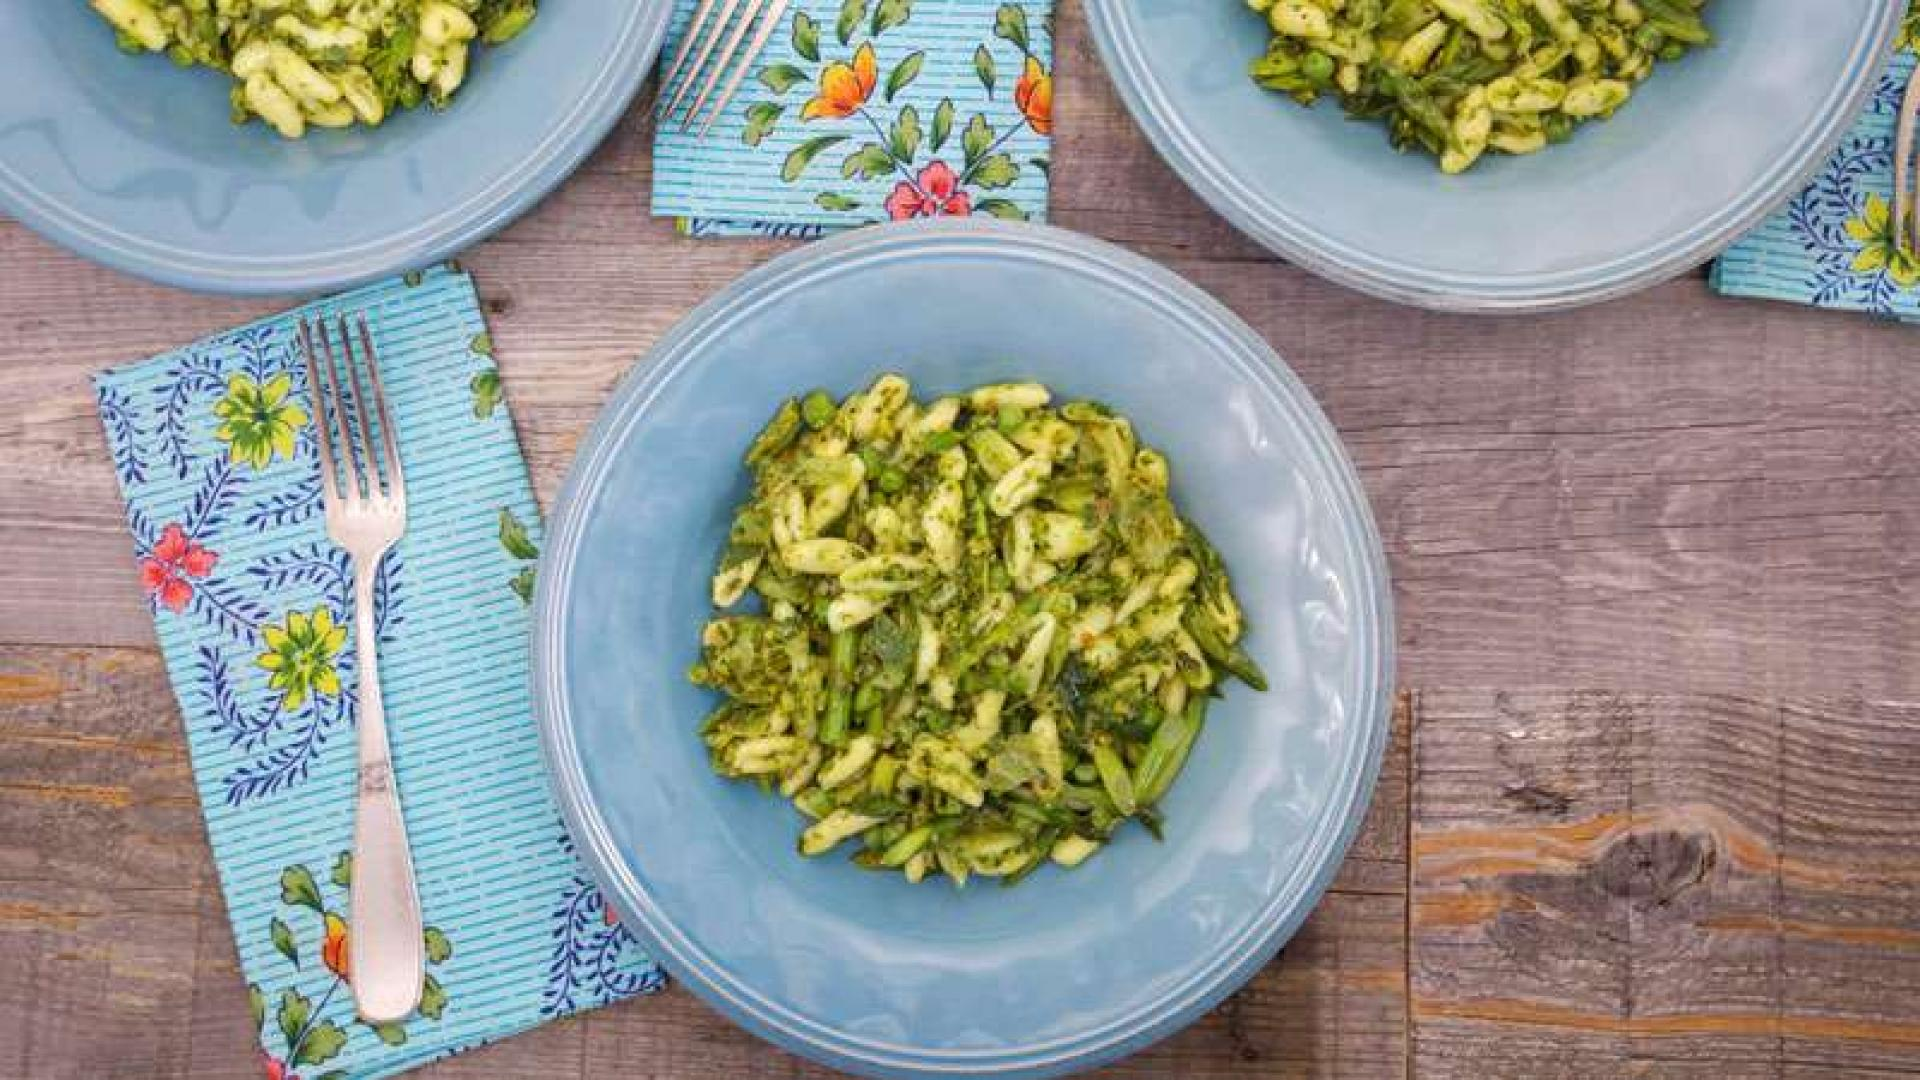 Cavatelli with Asparagus, Green Onions and Lemon-Herb-Pistachio ...